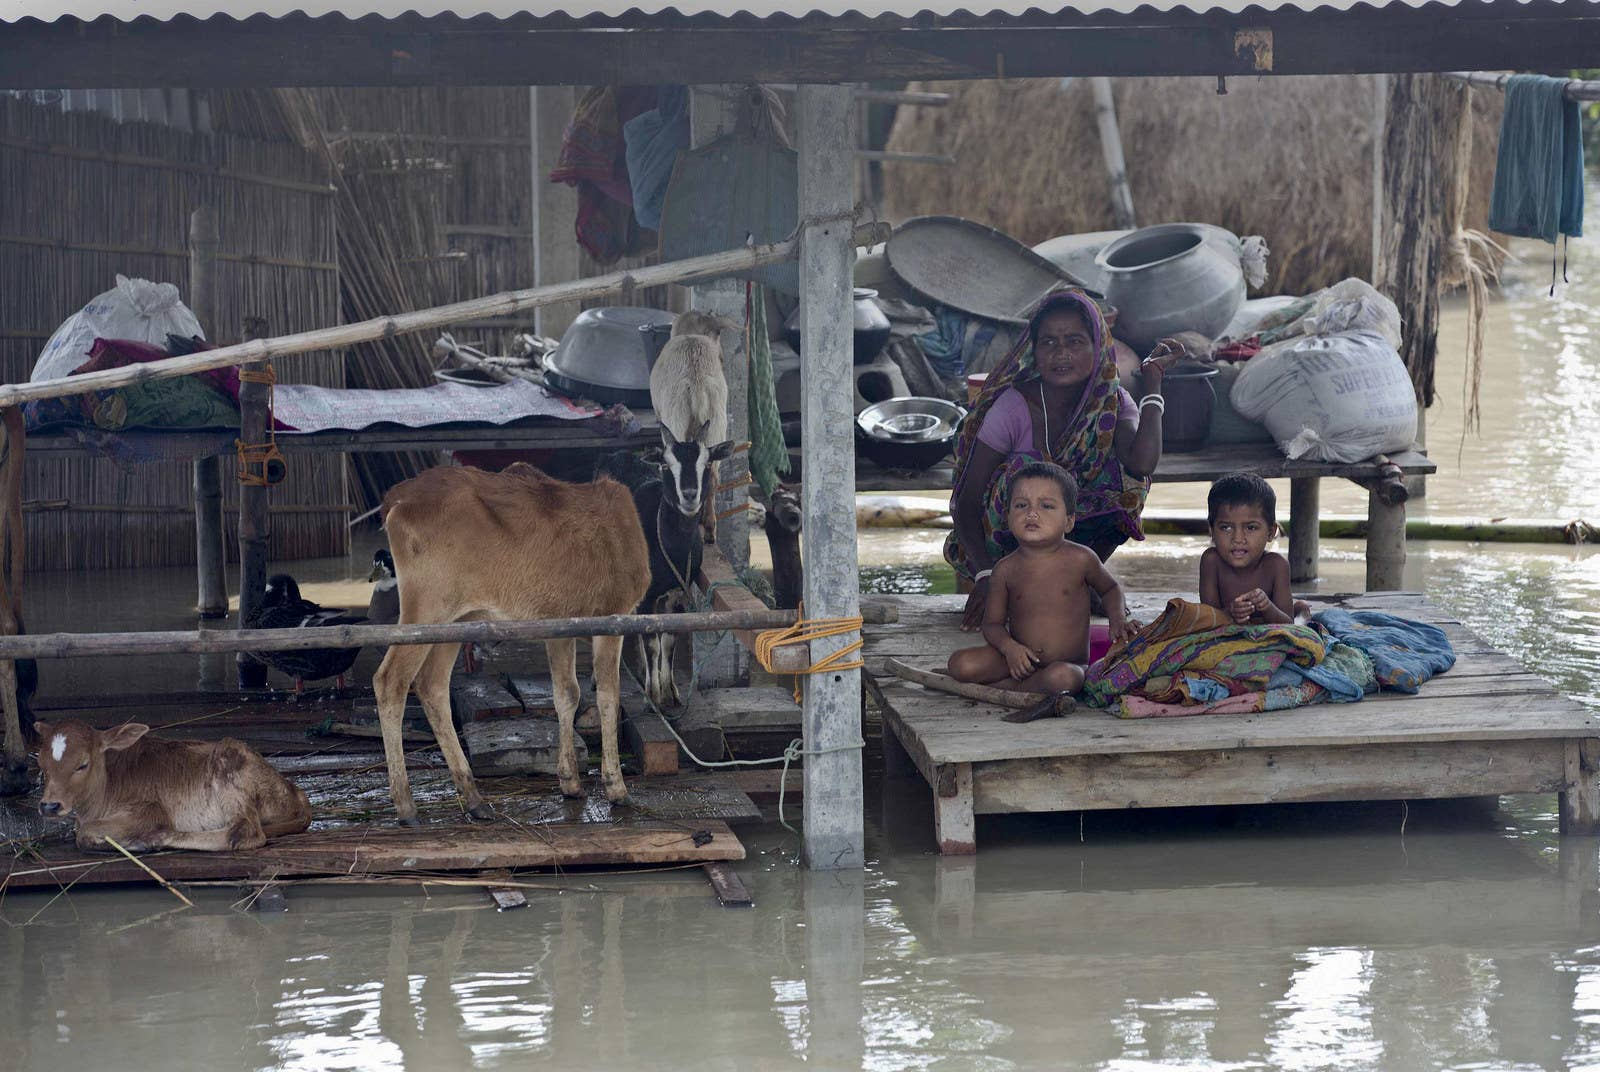 Flood victims wait for relief supplies in a village east of Gauhati in the northeastern Indian state of Assam.